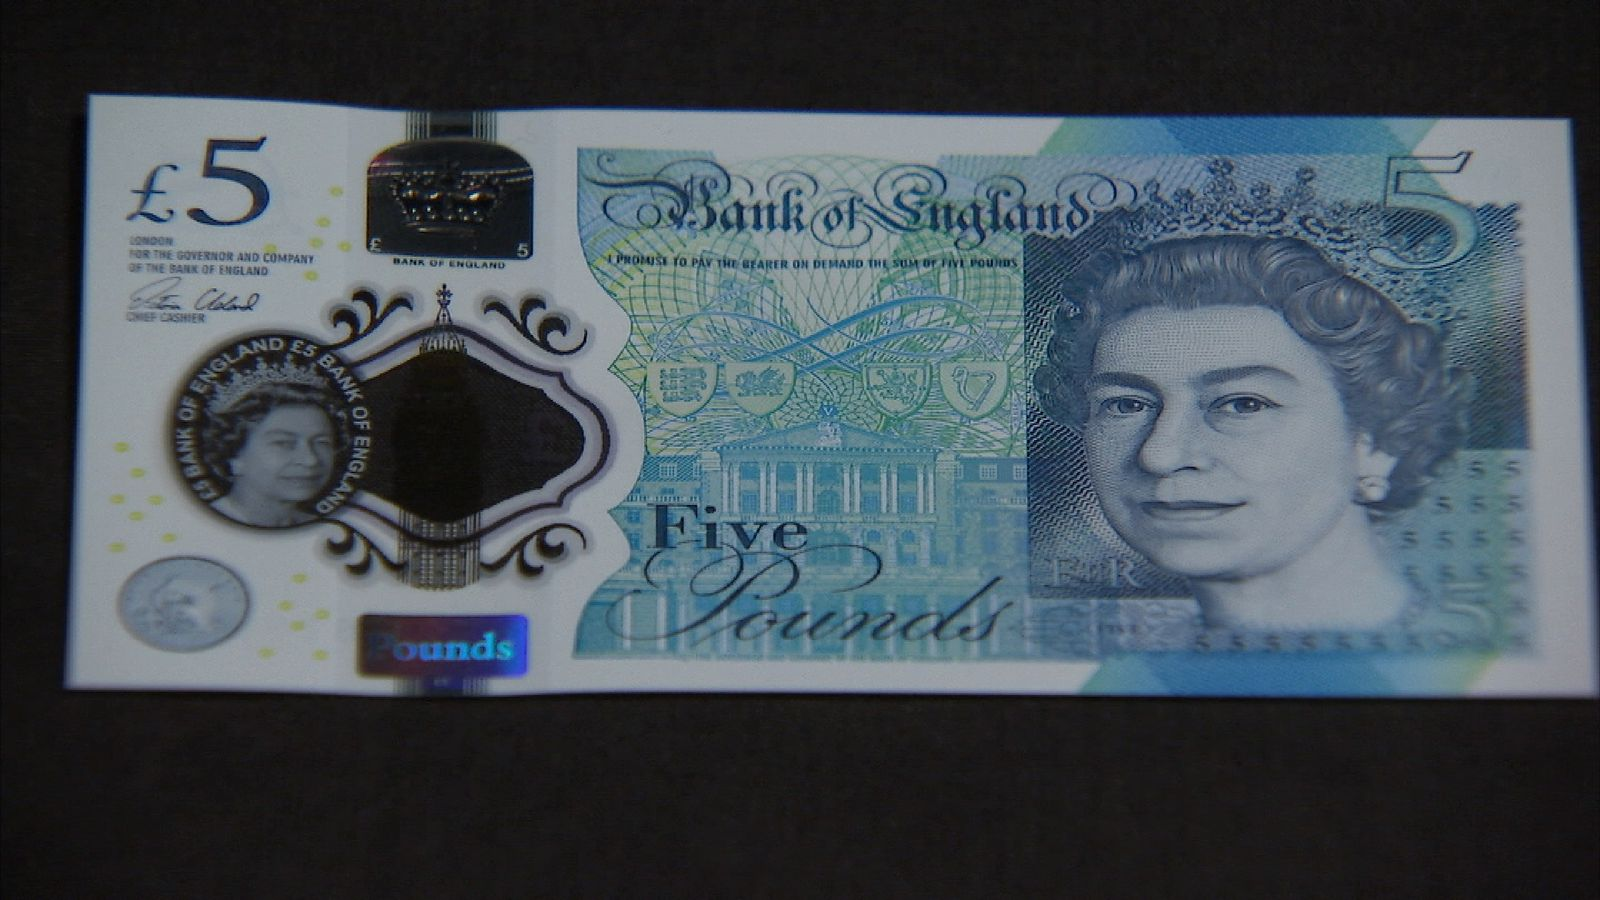 The new 5 pound note